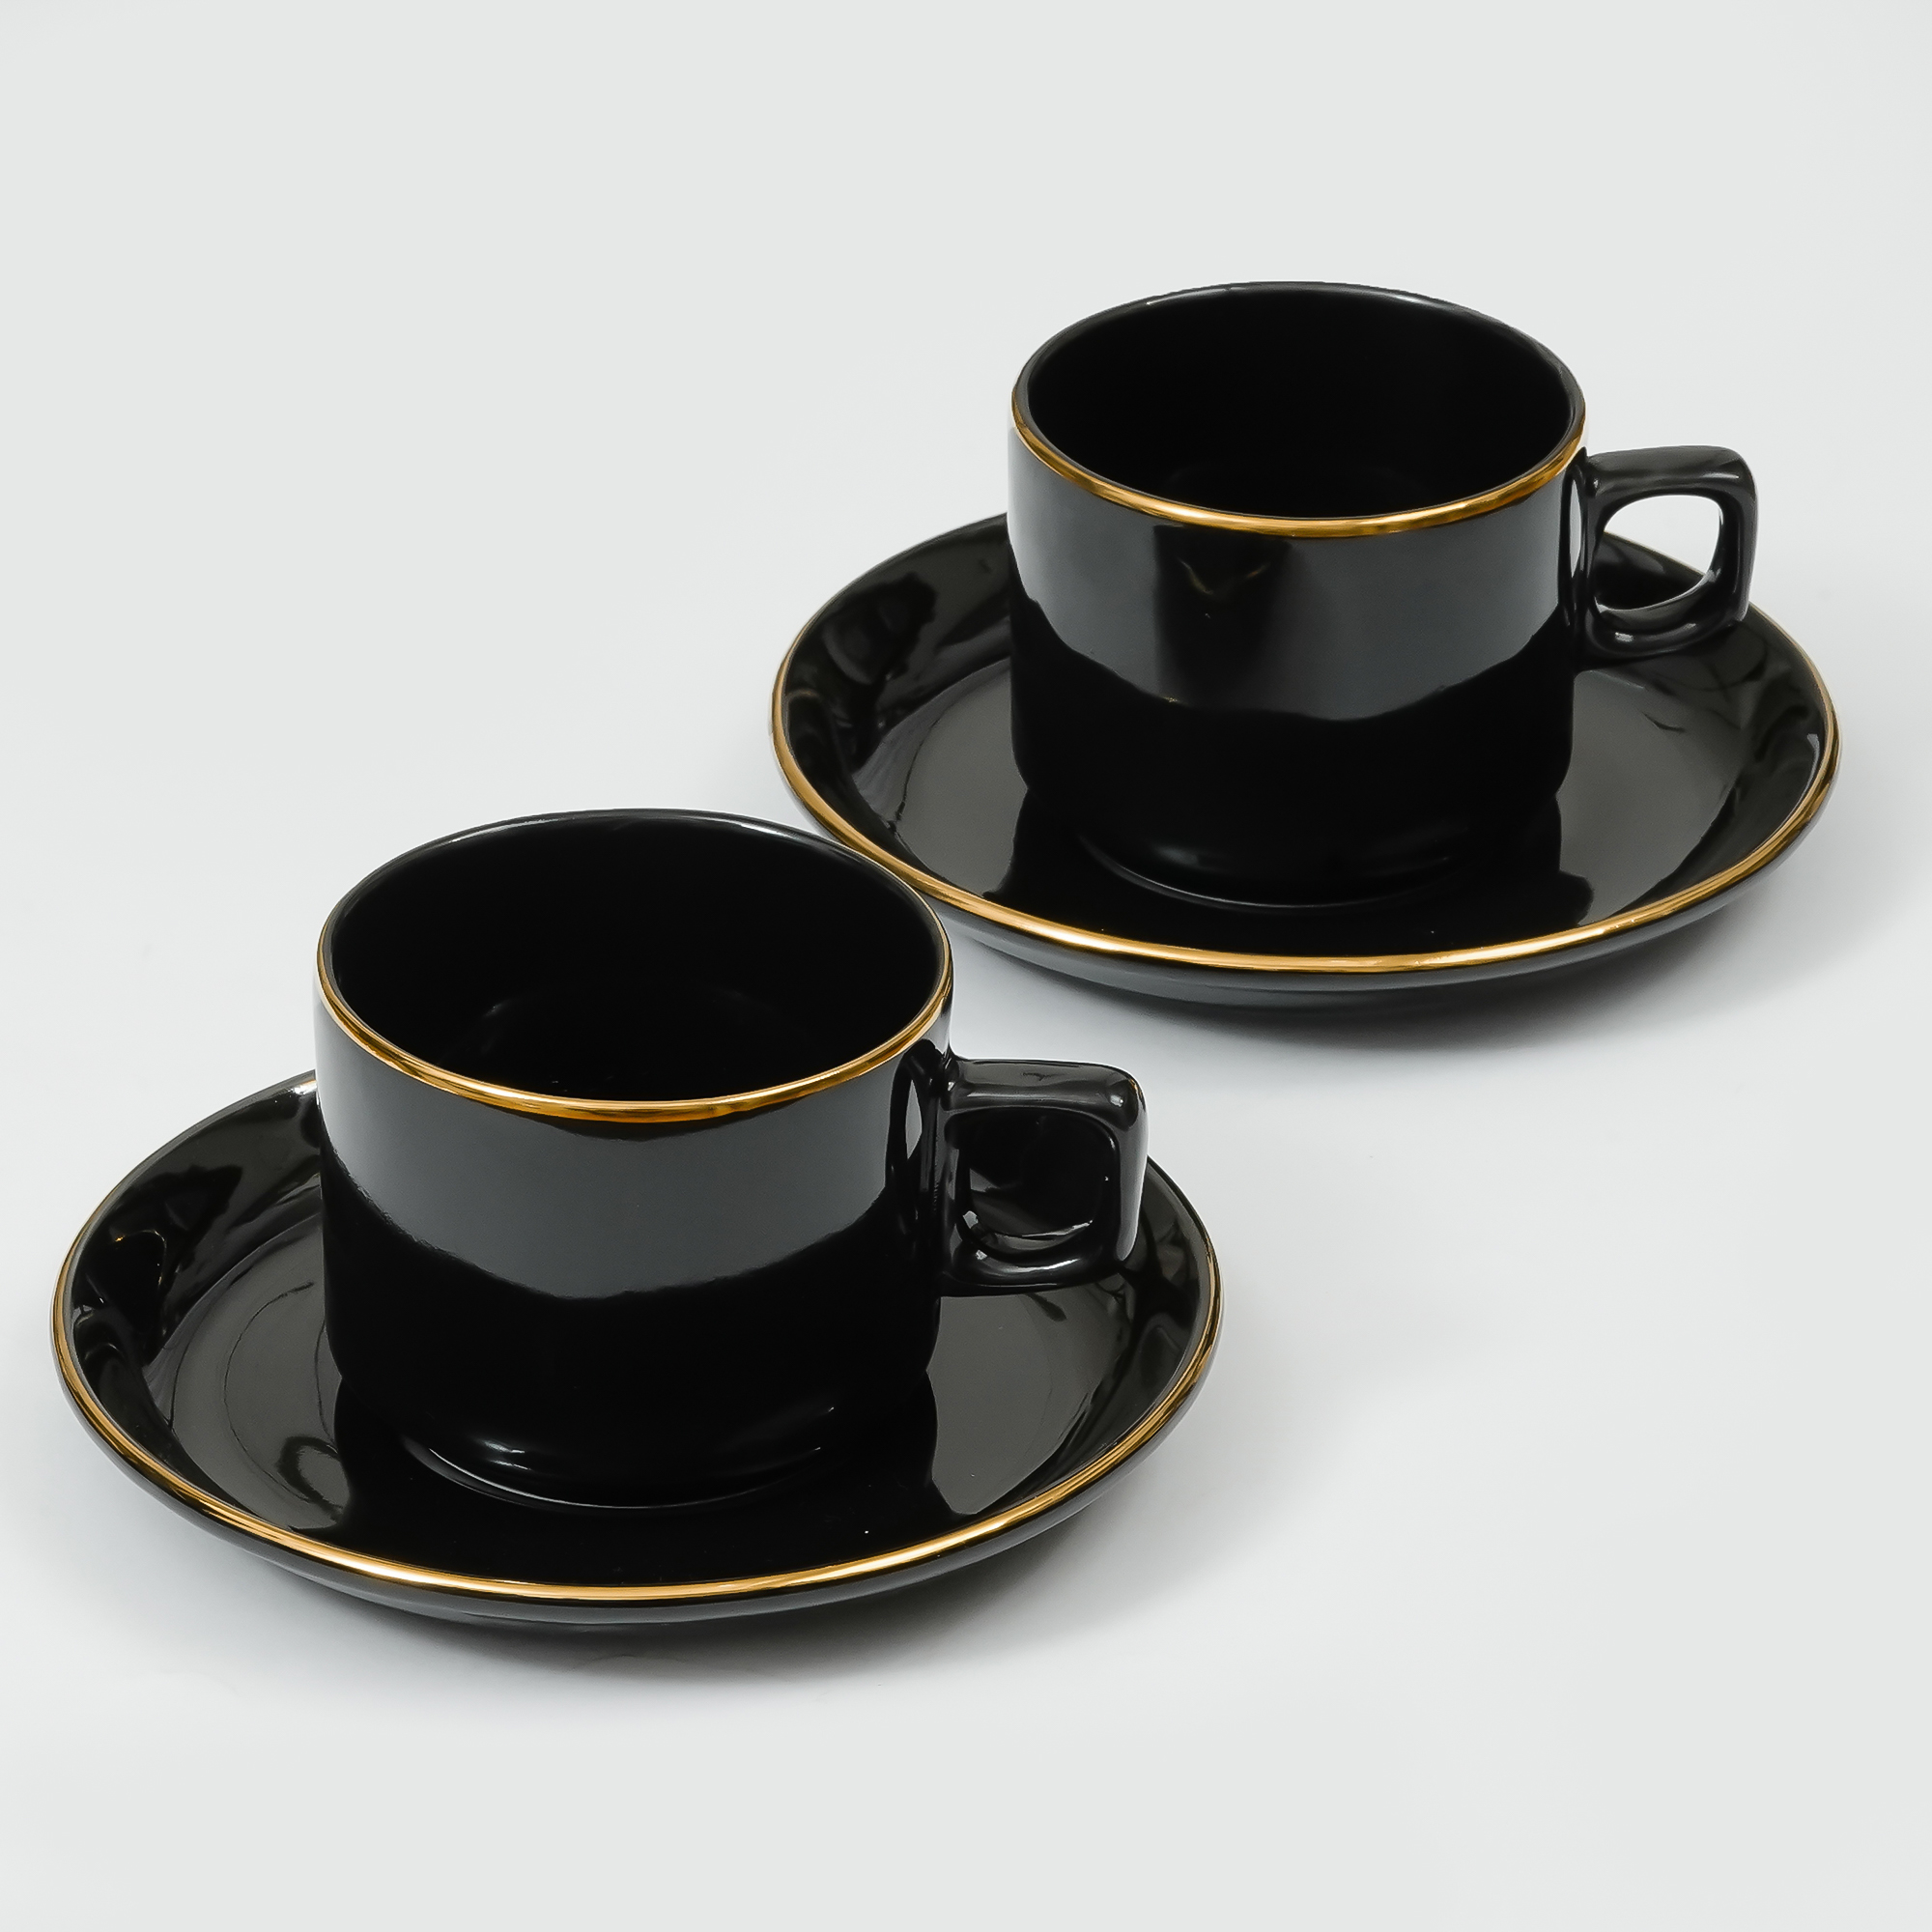 Femora Indian Ceramic Handmade Black Gold Plated Tea Cup with Saucers (6 Cup, 6 Saucer)